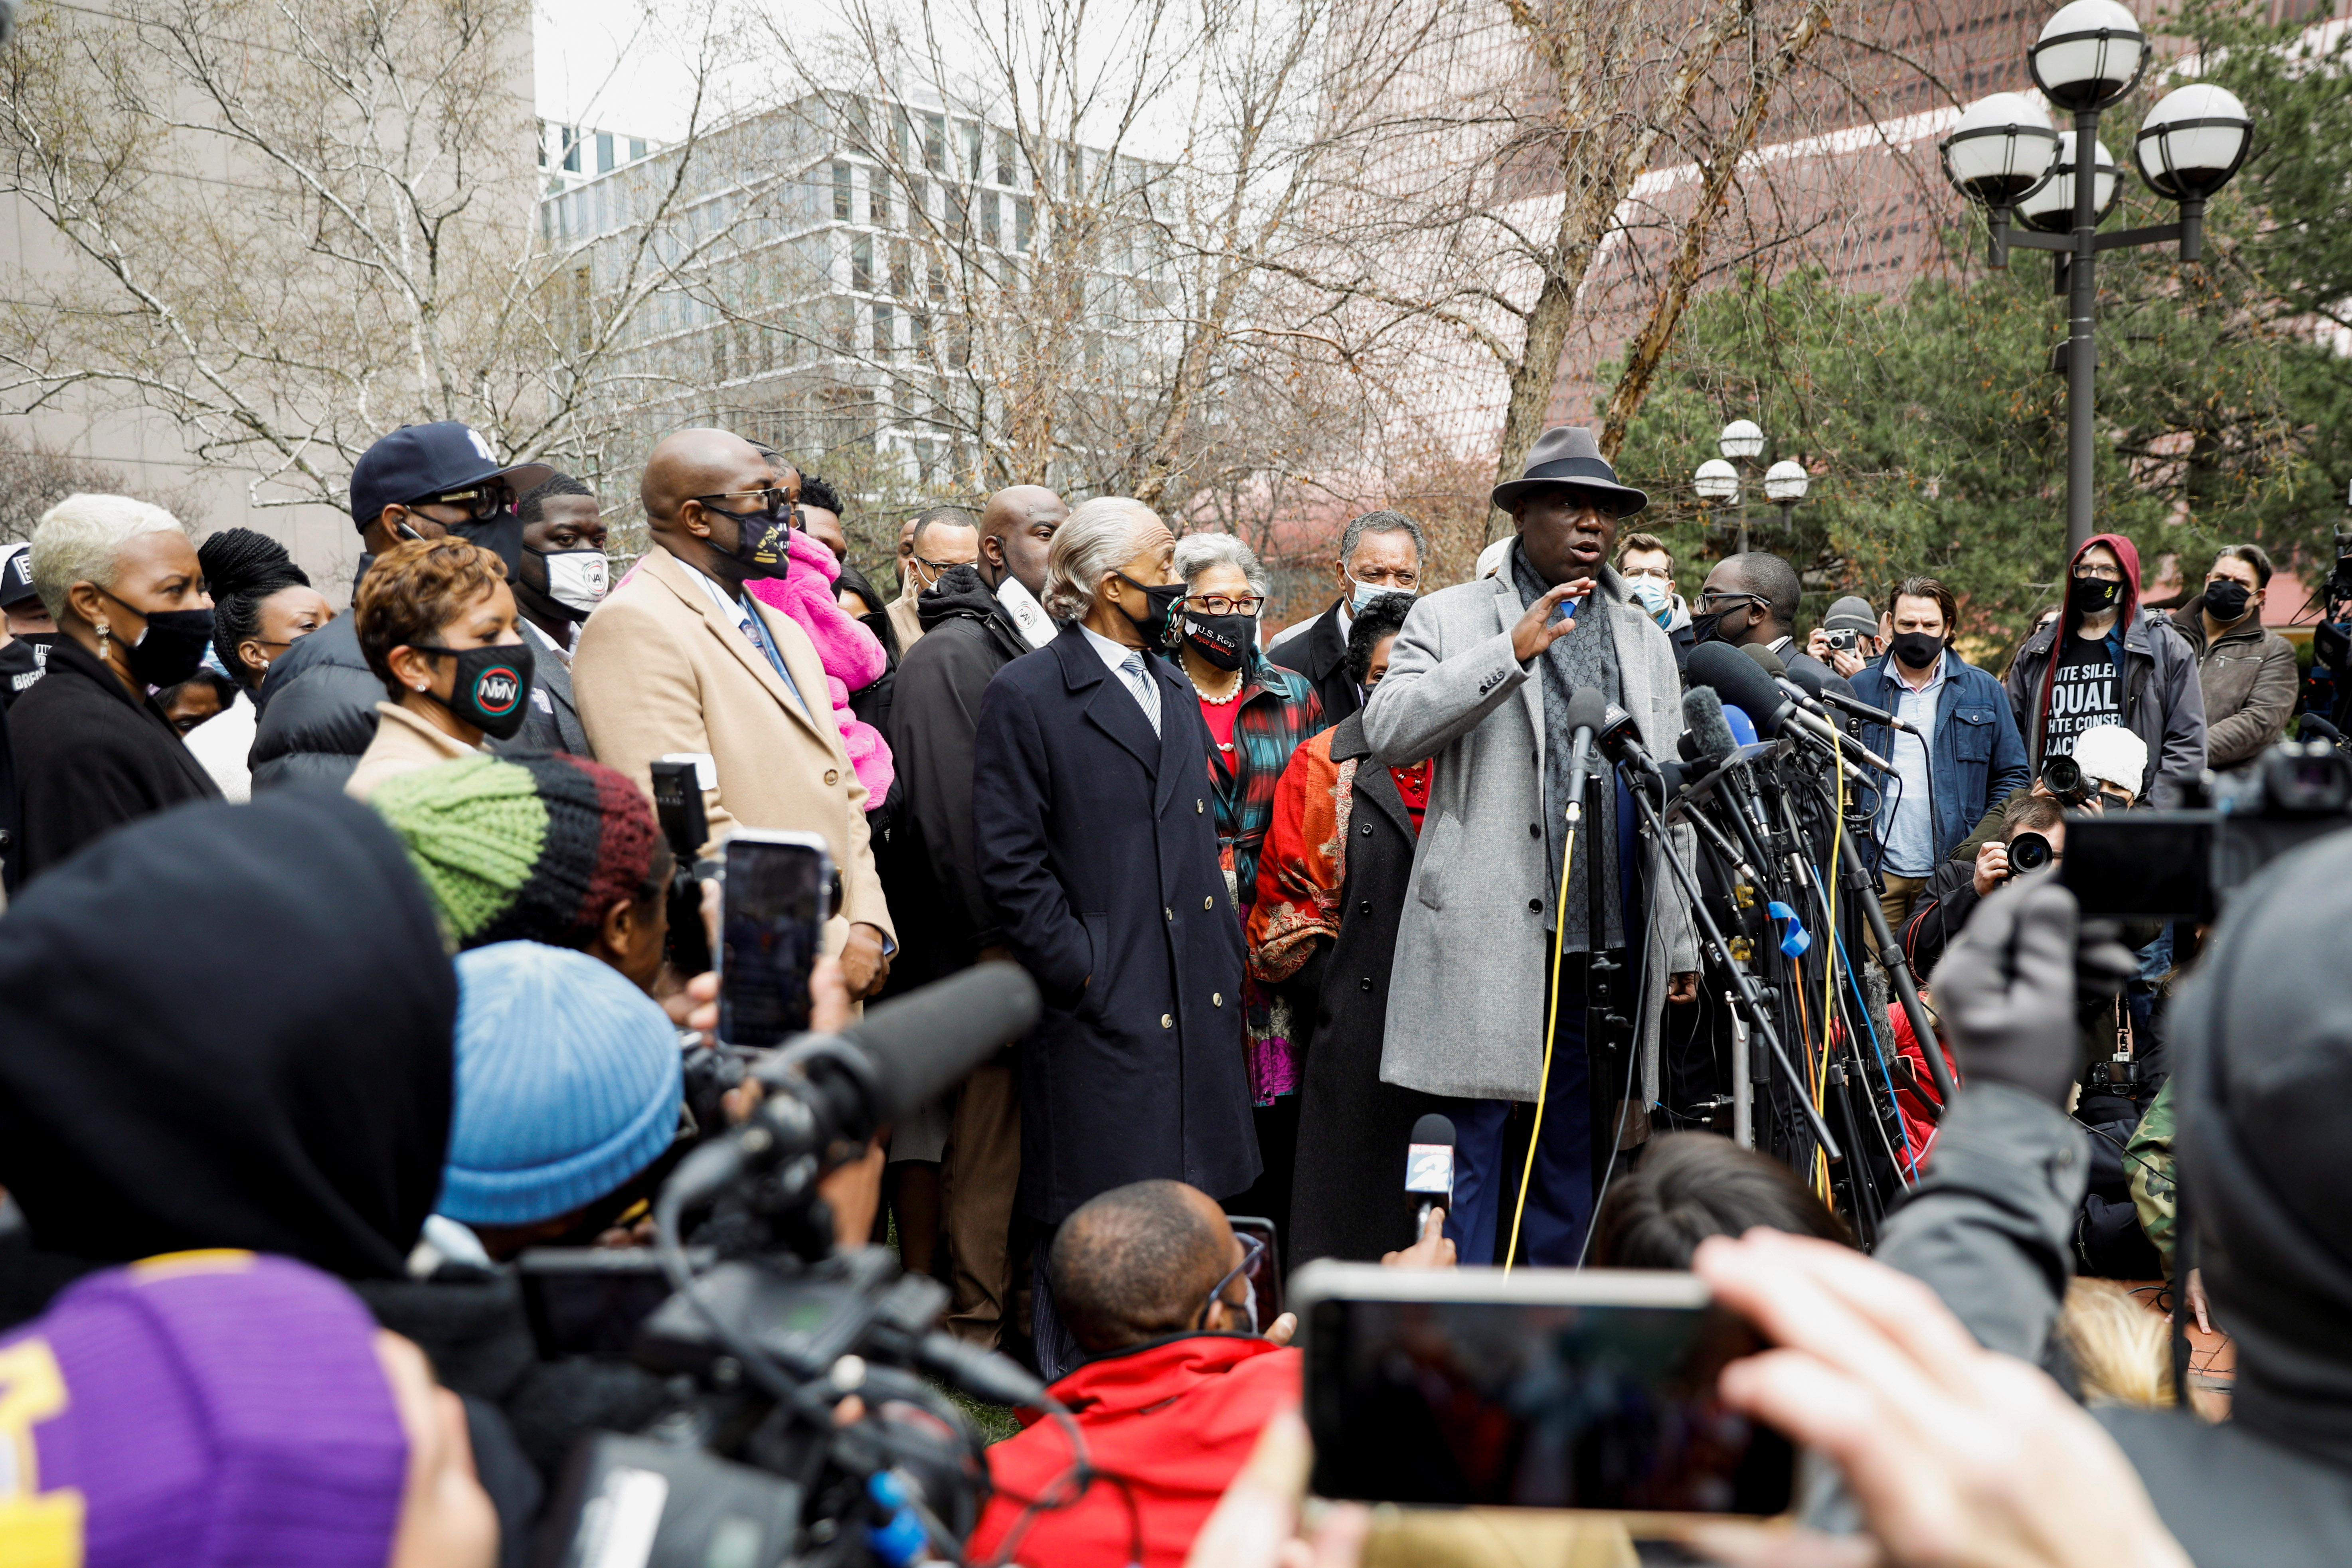 Floyd family attorney Ben Crump addresses the media during a press conference with family members of George Floyd, Reverend Al Sharpton, Rev Jesse Jackson and US Congressperson Ilhan Omar at a press conference outside the Hennepin County Government Center during the closing statements in the trial of former police officer Derek Chauvin, who is facing murder charges in the death of George Floyd, in Minneapolis, Minnesota, U.S., April 19, 2021. REUTERS/Nicholas Pfosi